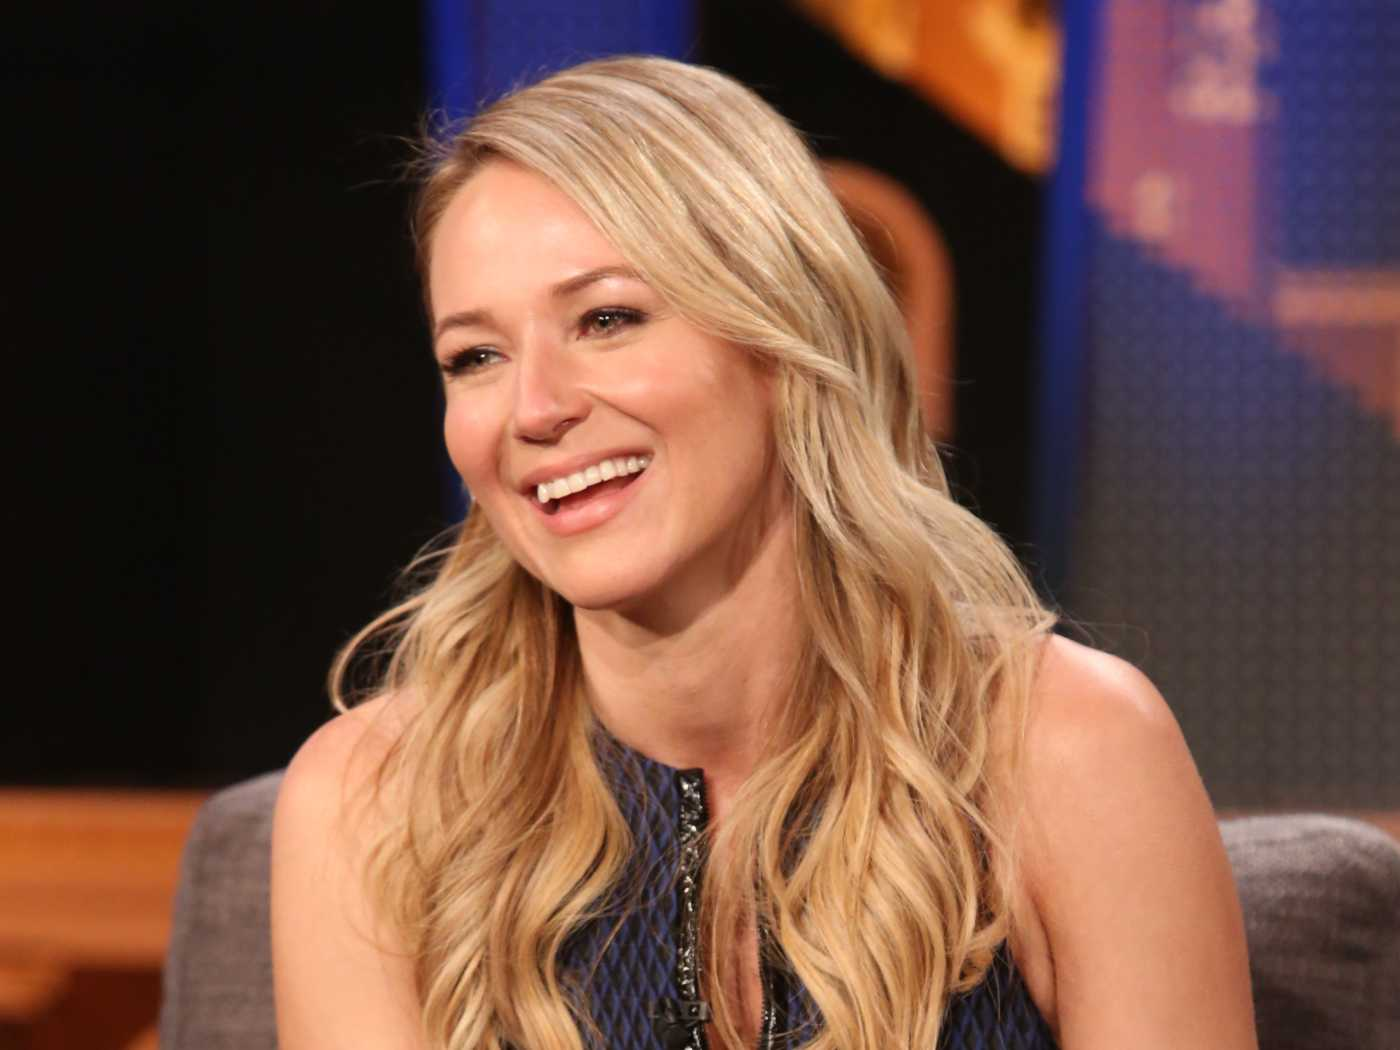 The Power of One: Jewel Joins the Fight with Cancer